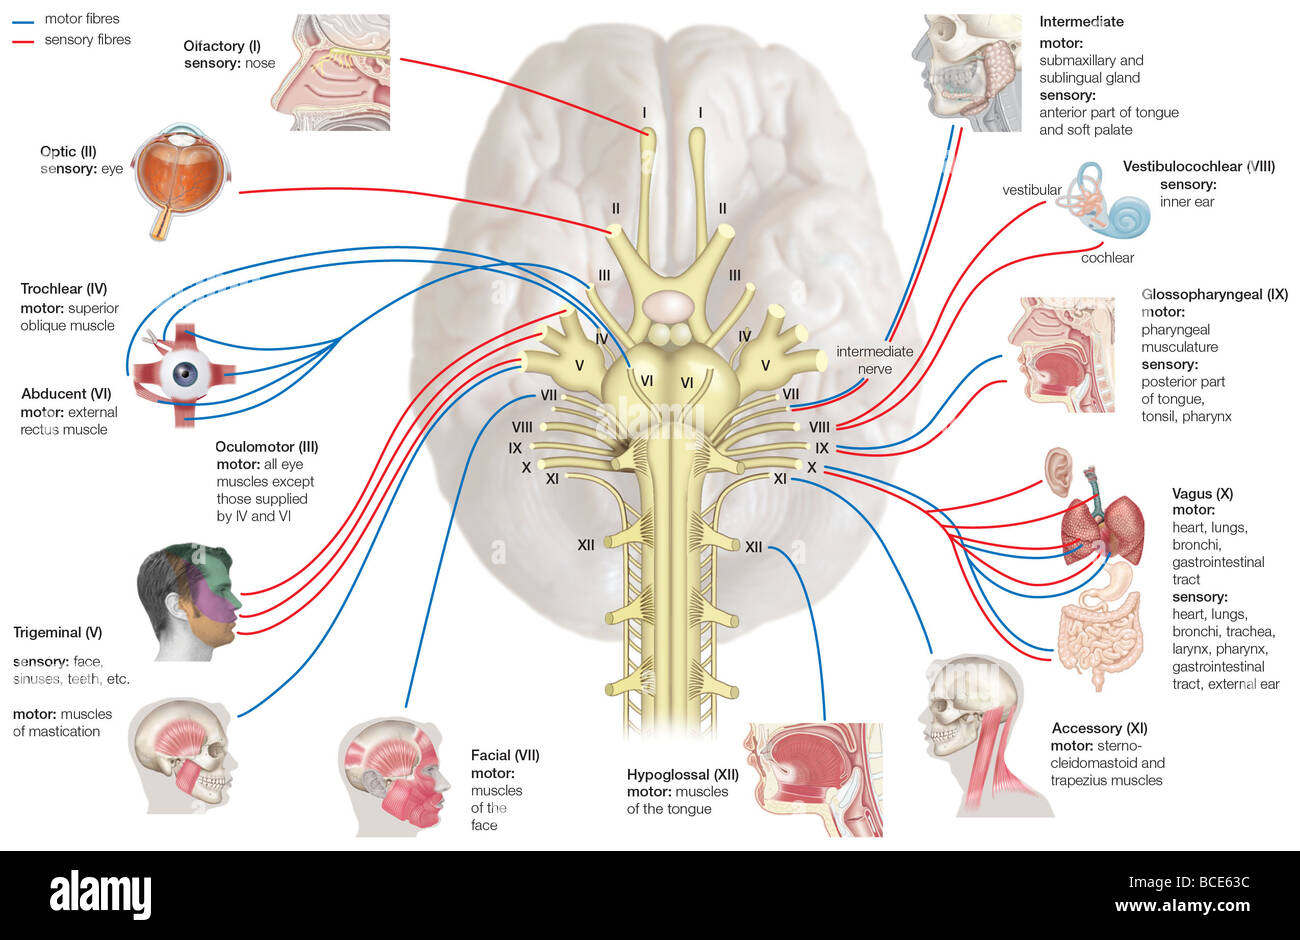 trigeminal nerve diagram bmw 2002 alternator wiring the human cranial nerves and their areas of innervation